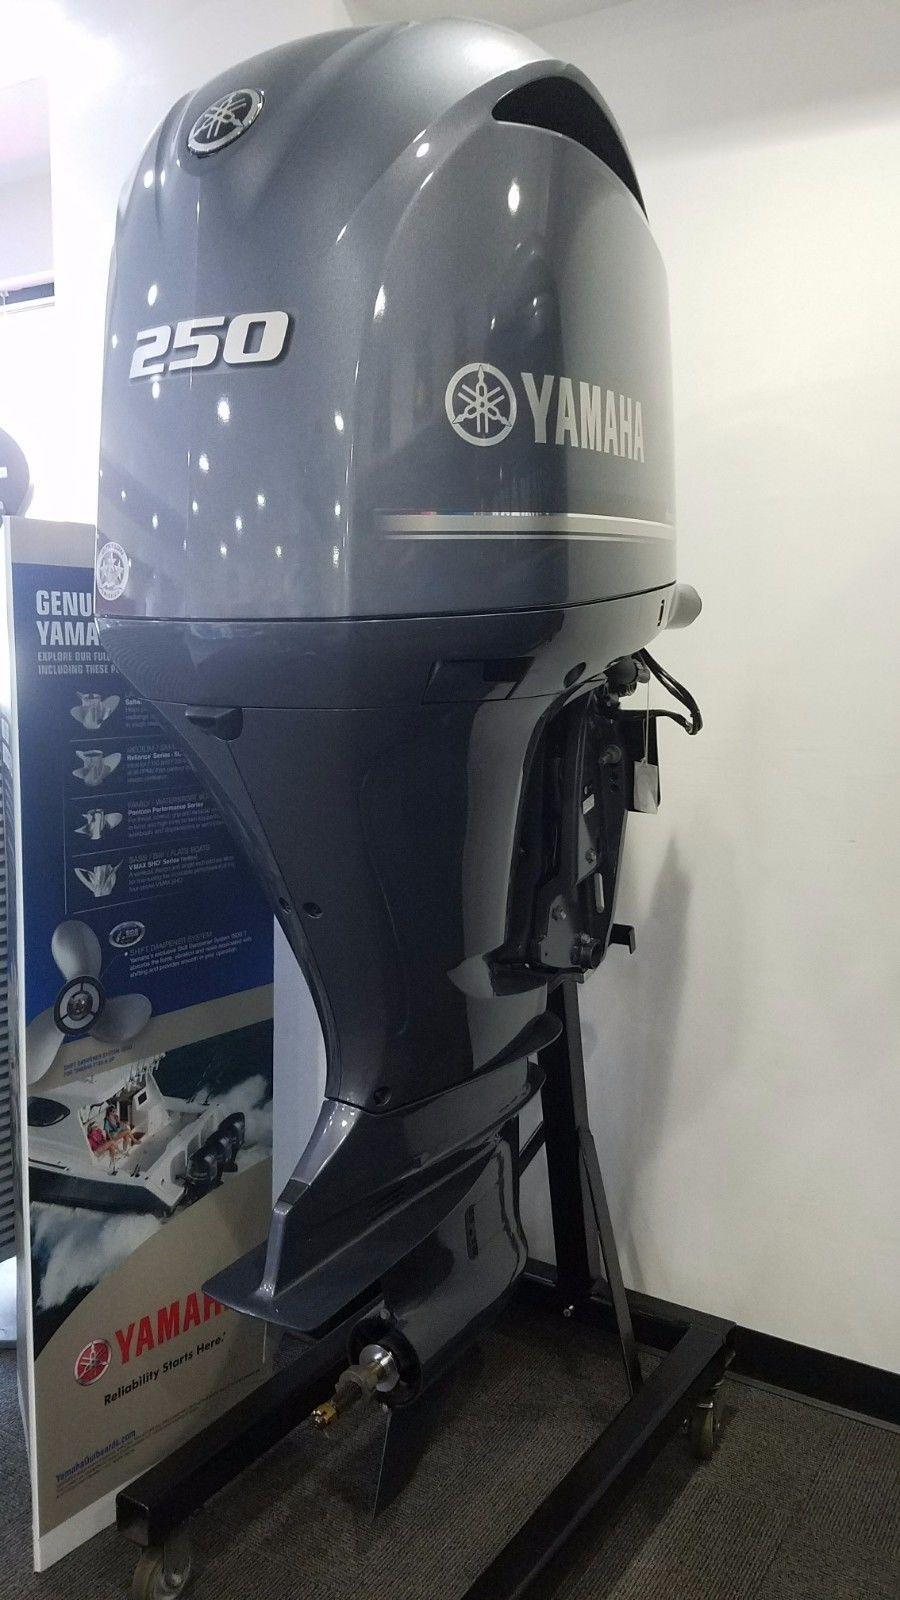 YAMAHA 250 HP 4 STROKE OUTBOARD selling at affordable price and